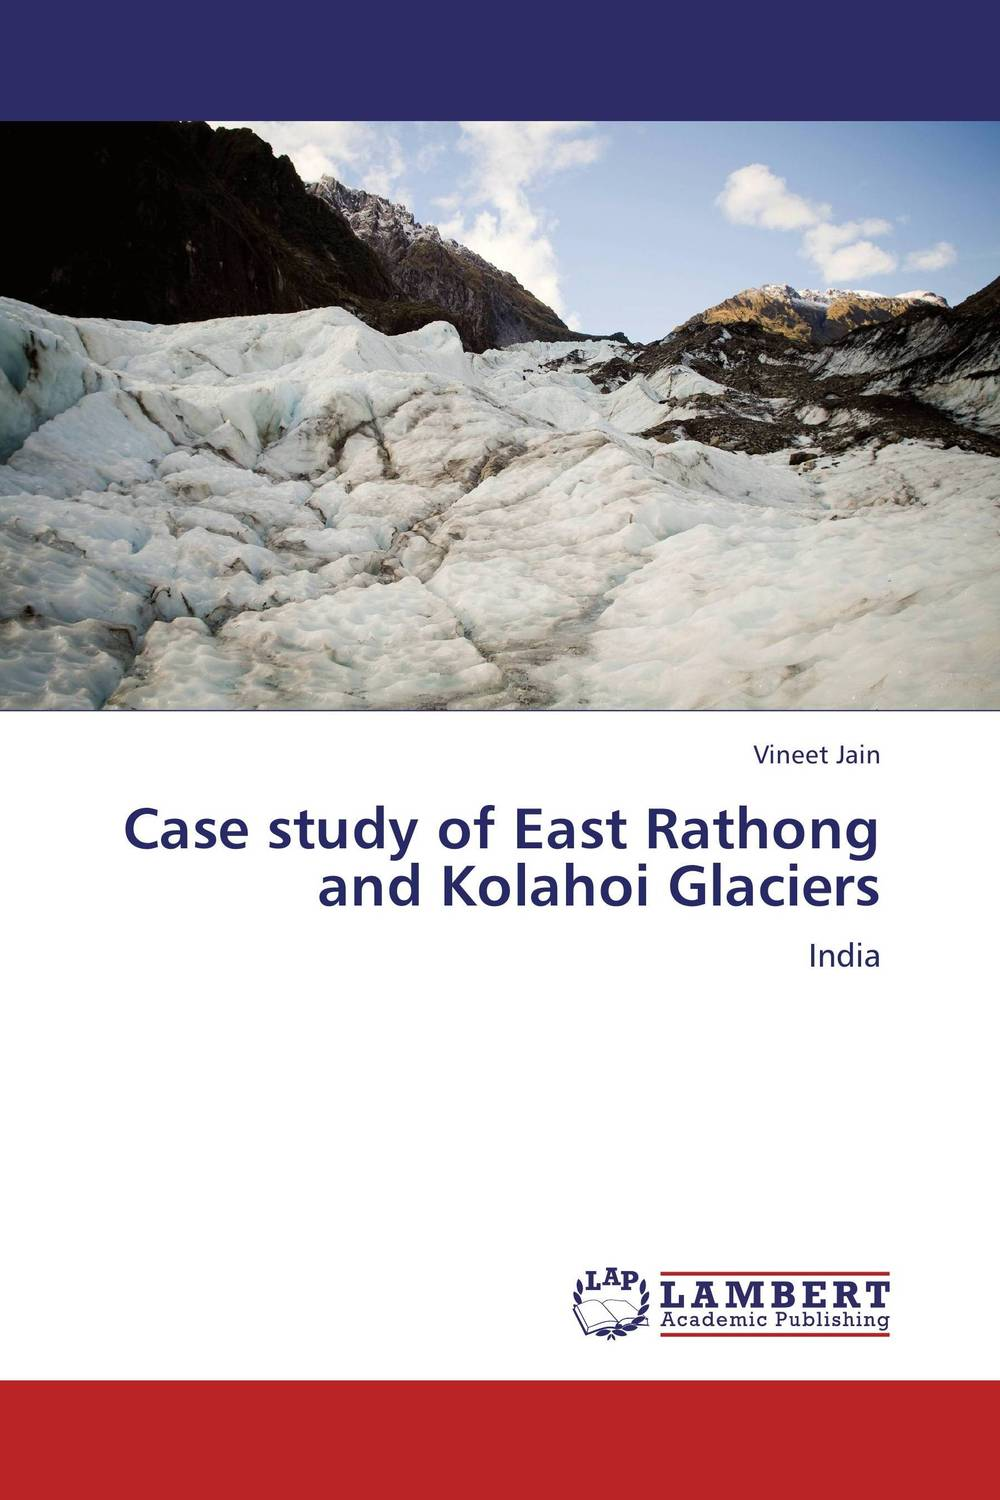 Case study of East Rathong and Kolahoi Glaciers